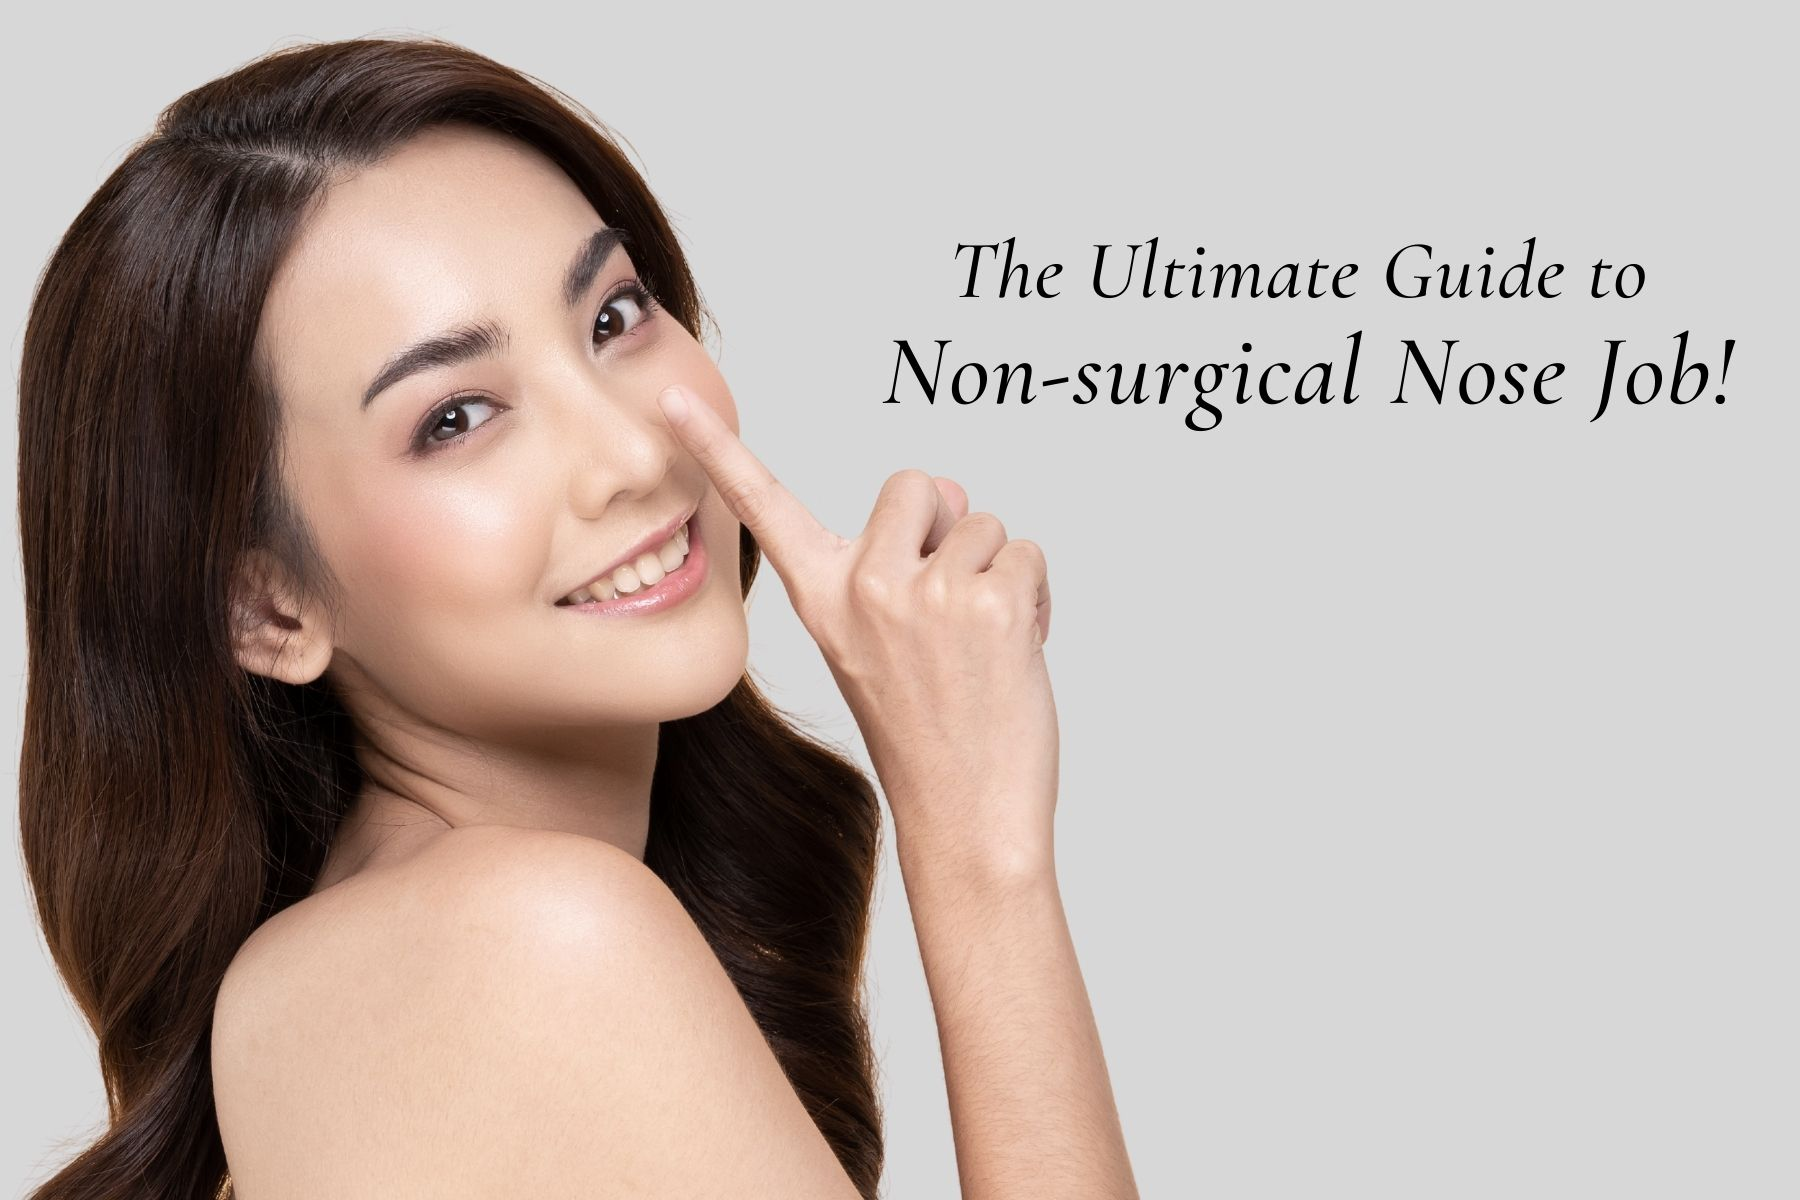 The Ultimate Guide to Non-surgical Nose Job!